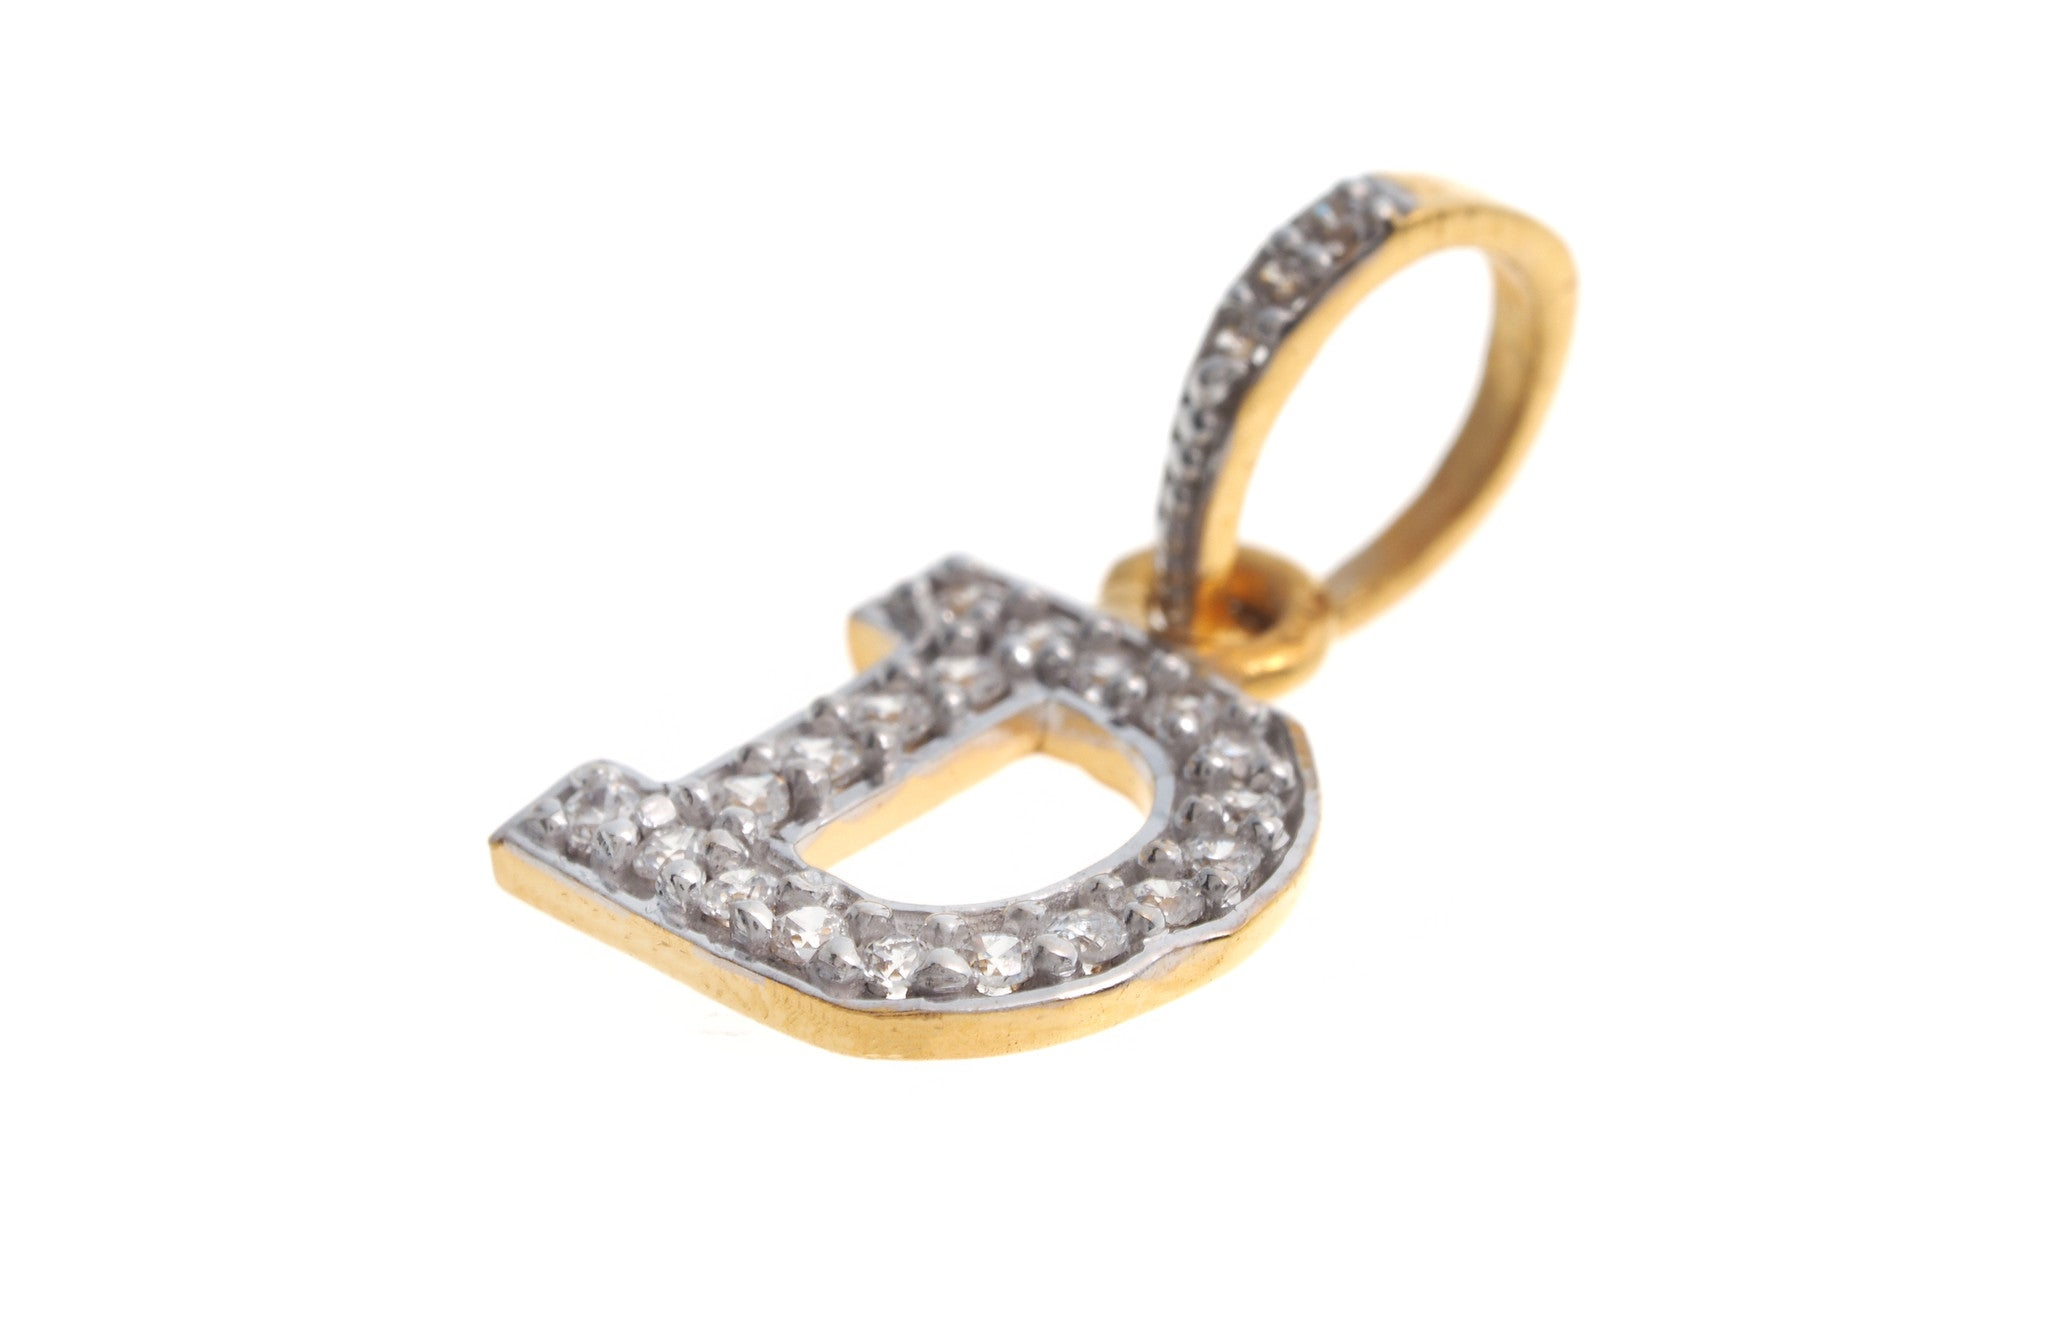 'D' Initial Pendant 22ct Yellow Gold Cubic Zirconia (1.2g) P-5594